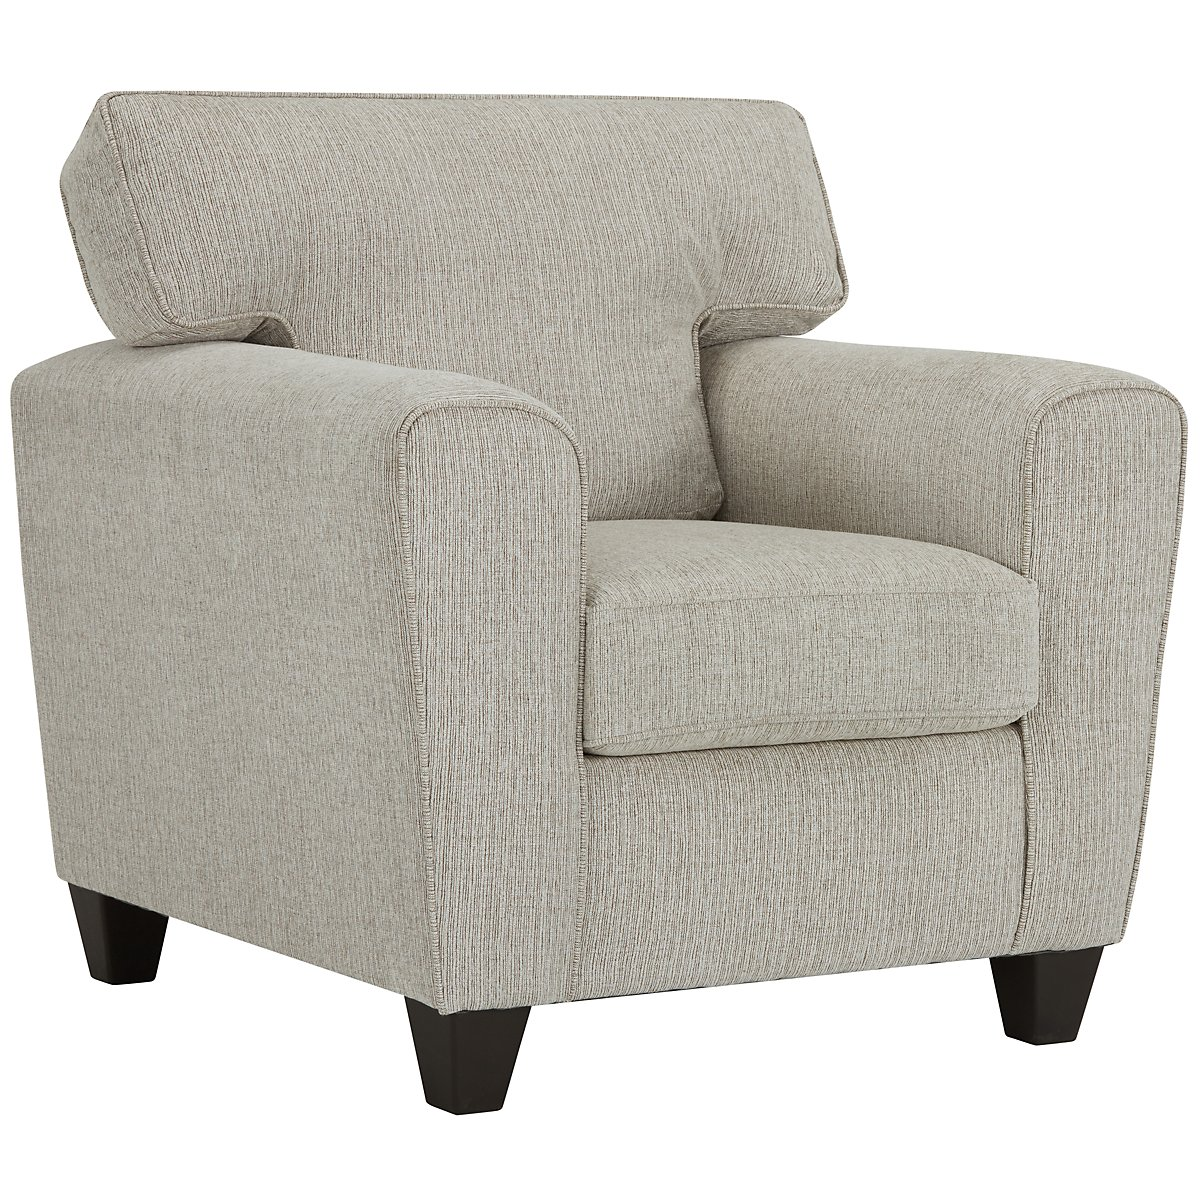 Living Room Chairs For City Furniture Living Room Furniture Chairs